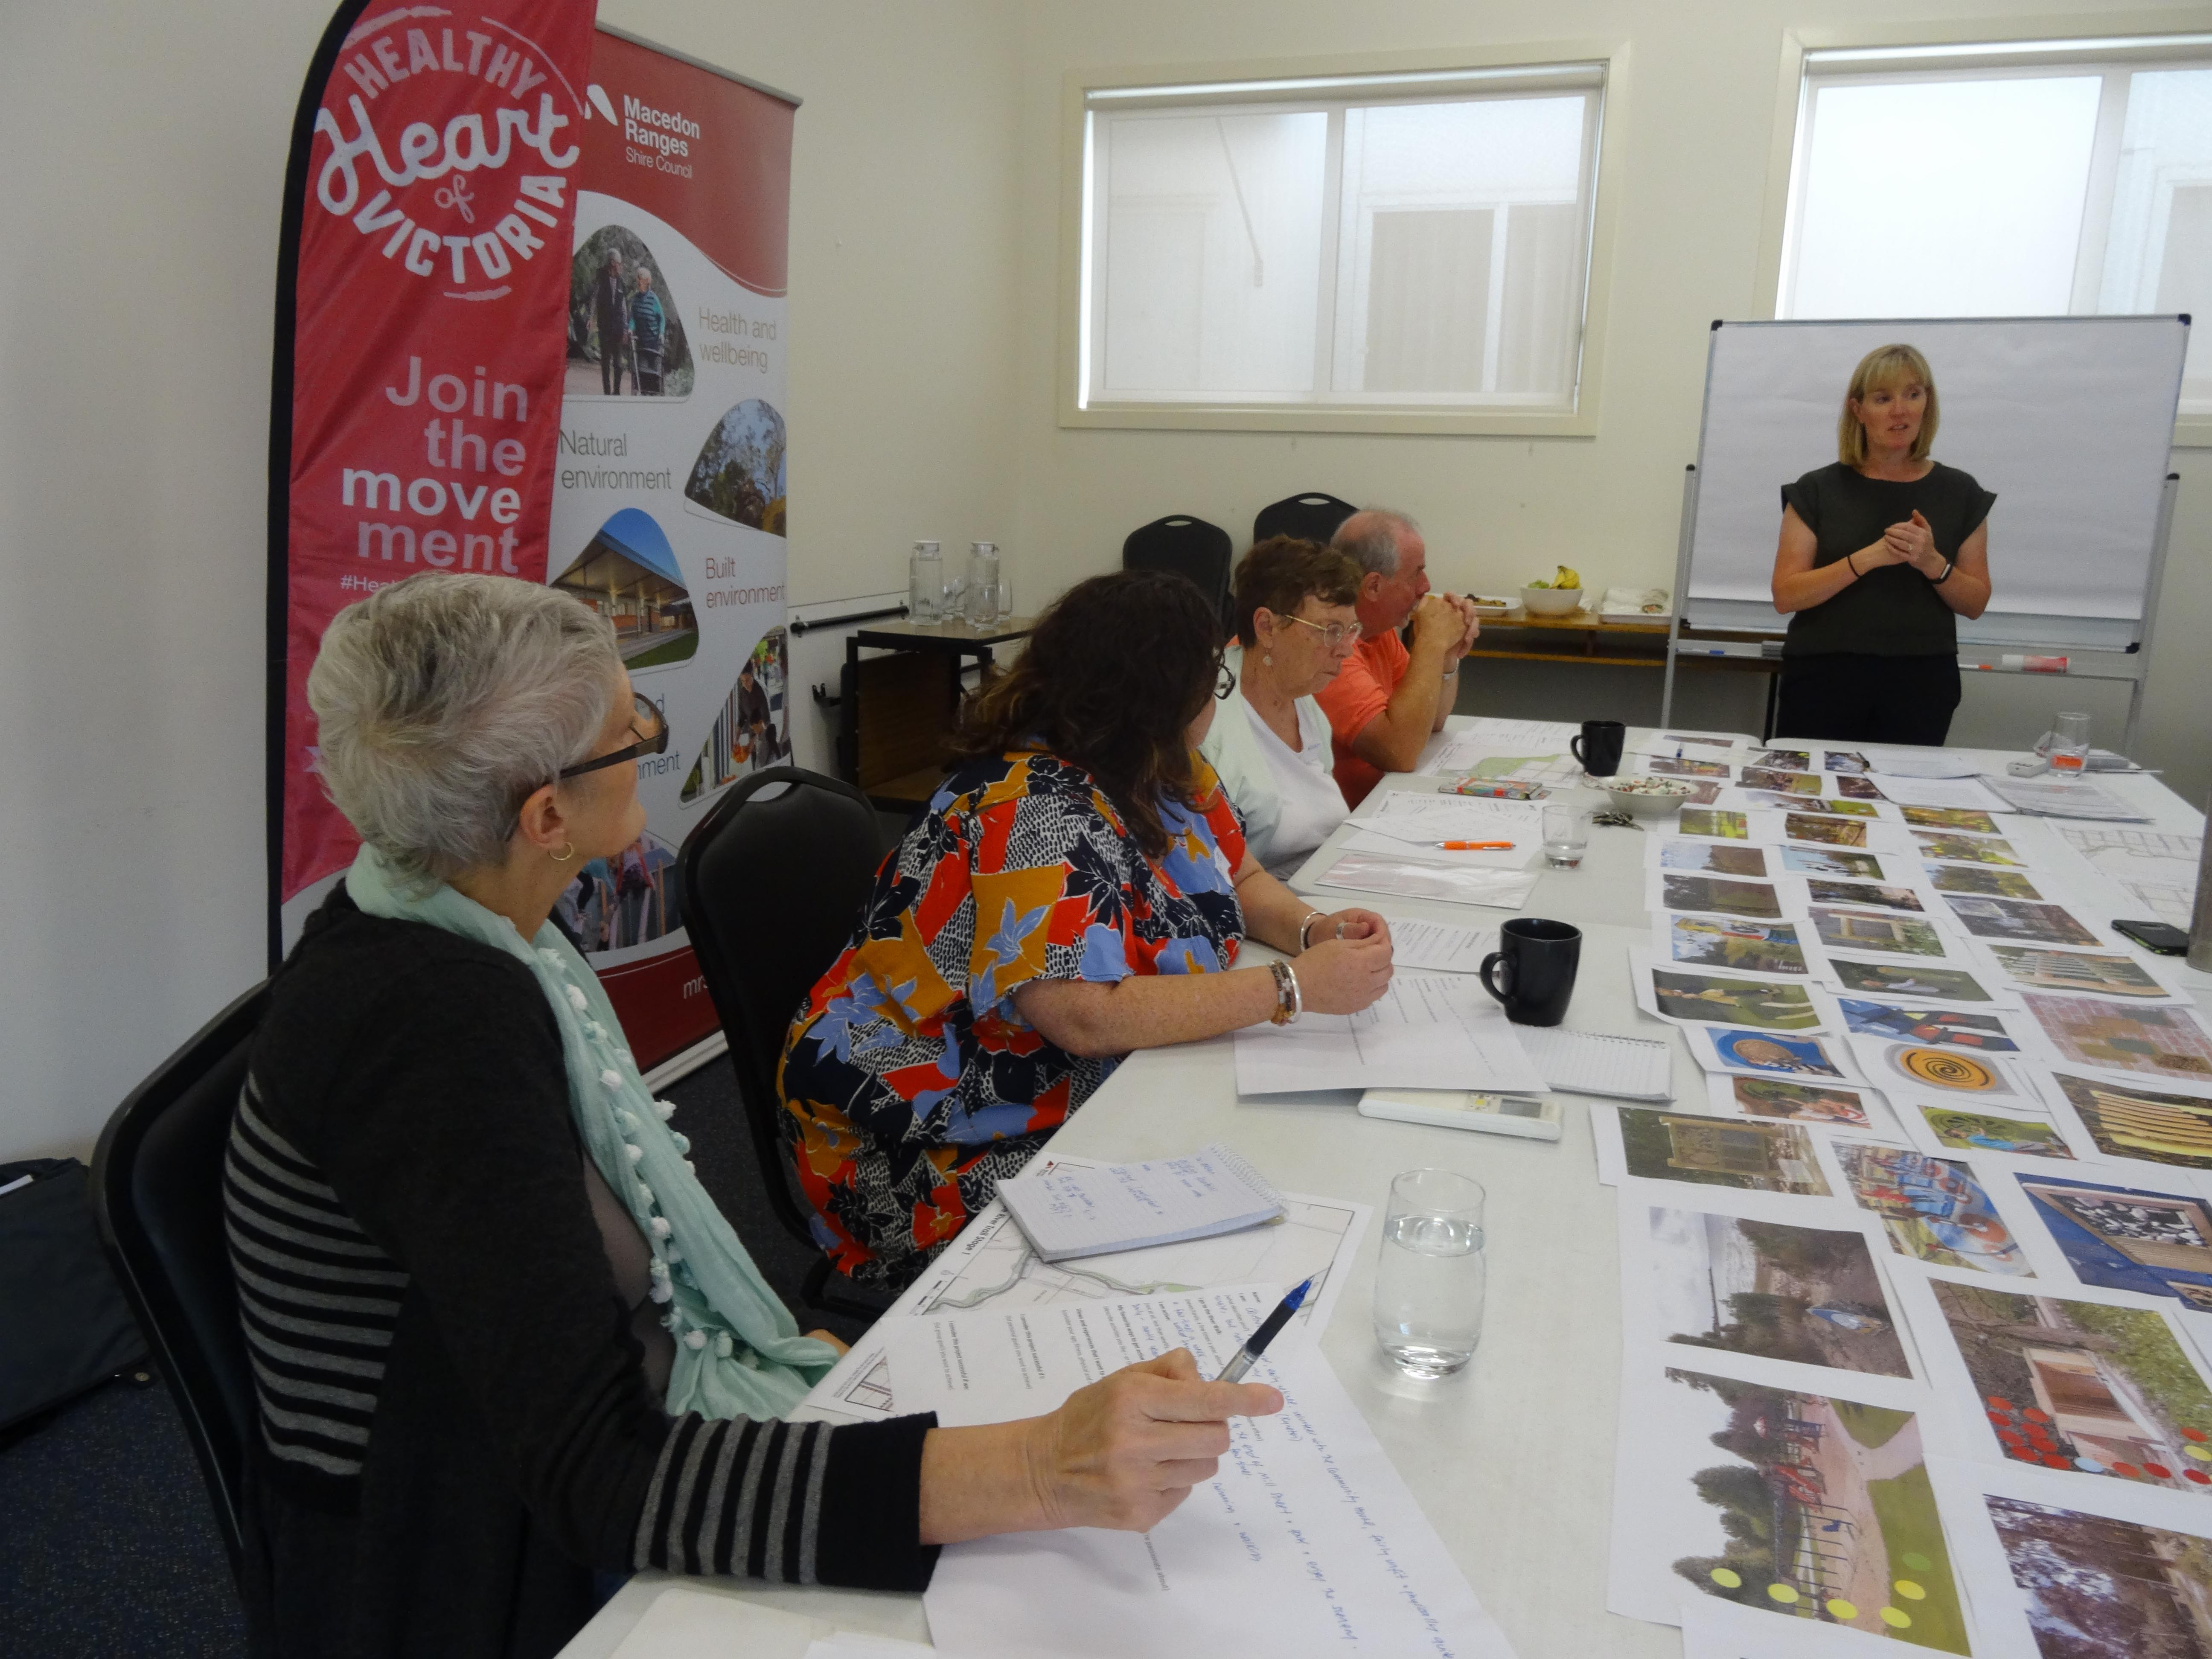 February meeting at Kyneton Community House